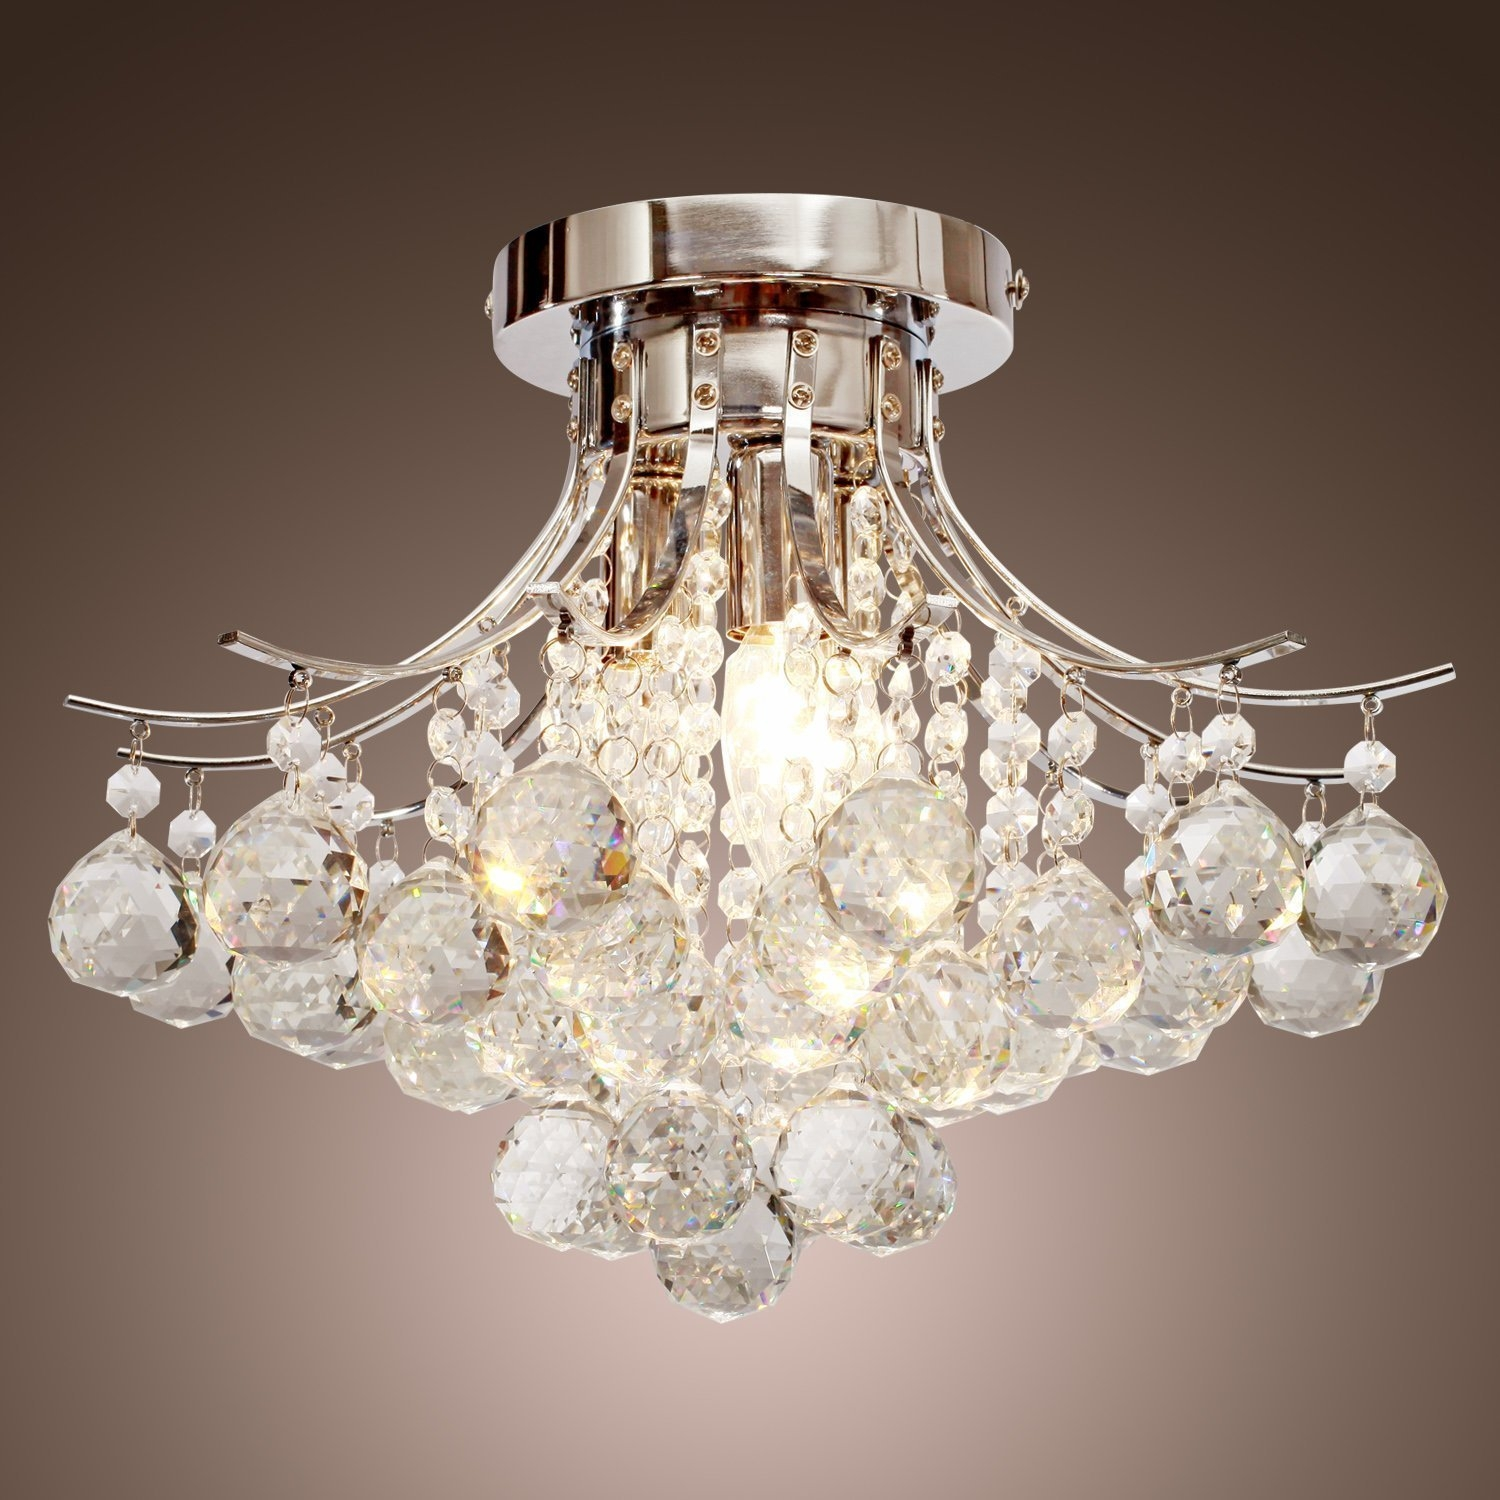 Chandeliers Amazon Lighting Ceiling Fans Ceiling Lights Within Small Chandeliers For Low Ceilings (#5 of 12)